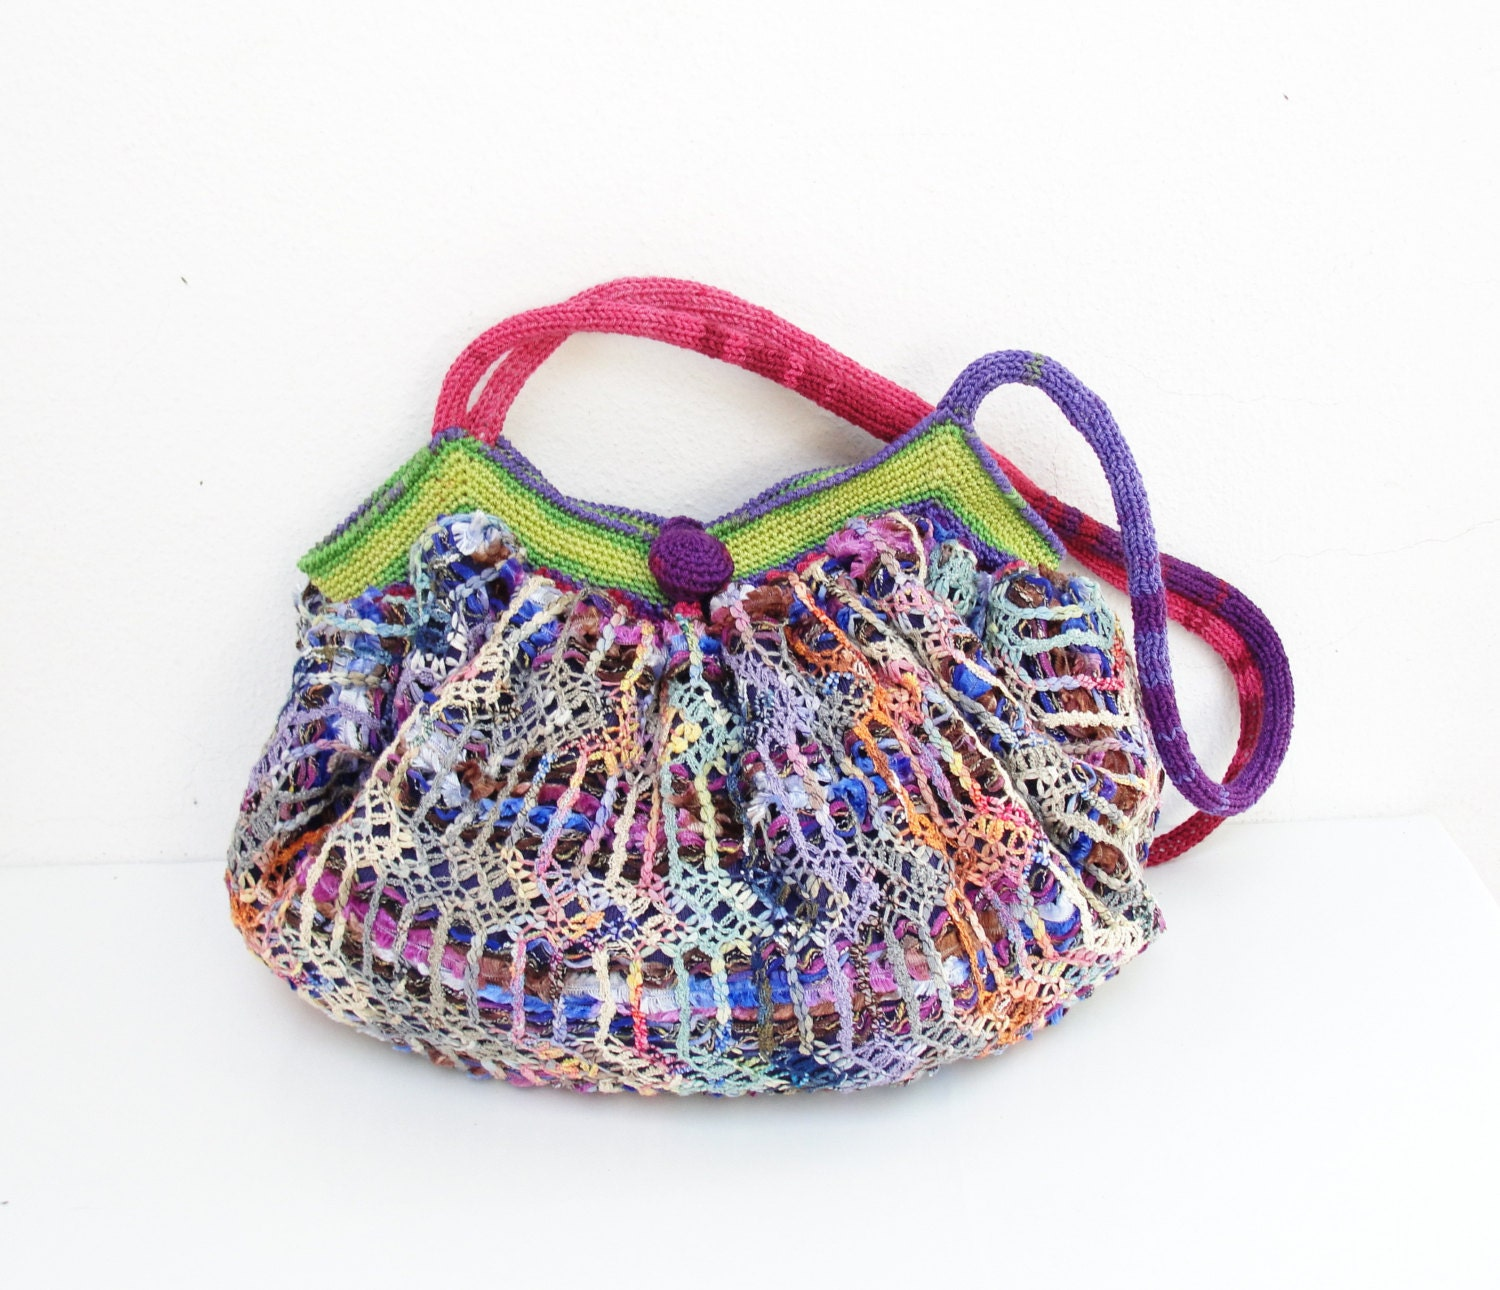 Knitting Pattern Hobo Bag : Happy Hobo Bag Knit fabric and crochet details by StarBags on Etsy